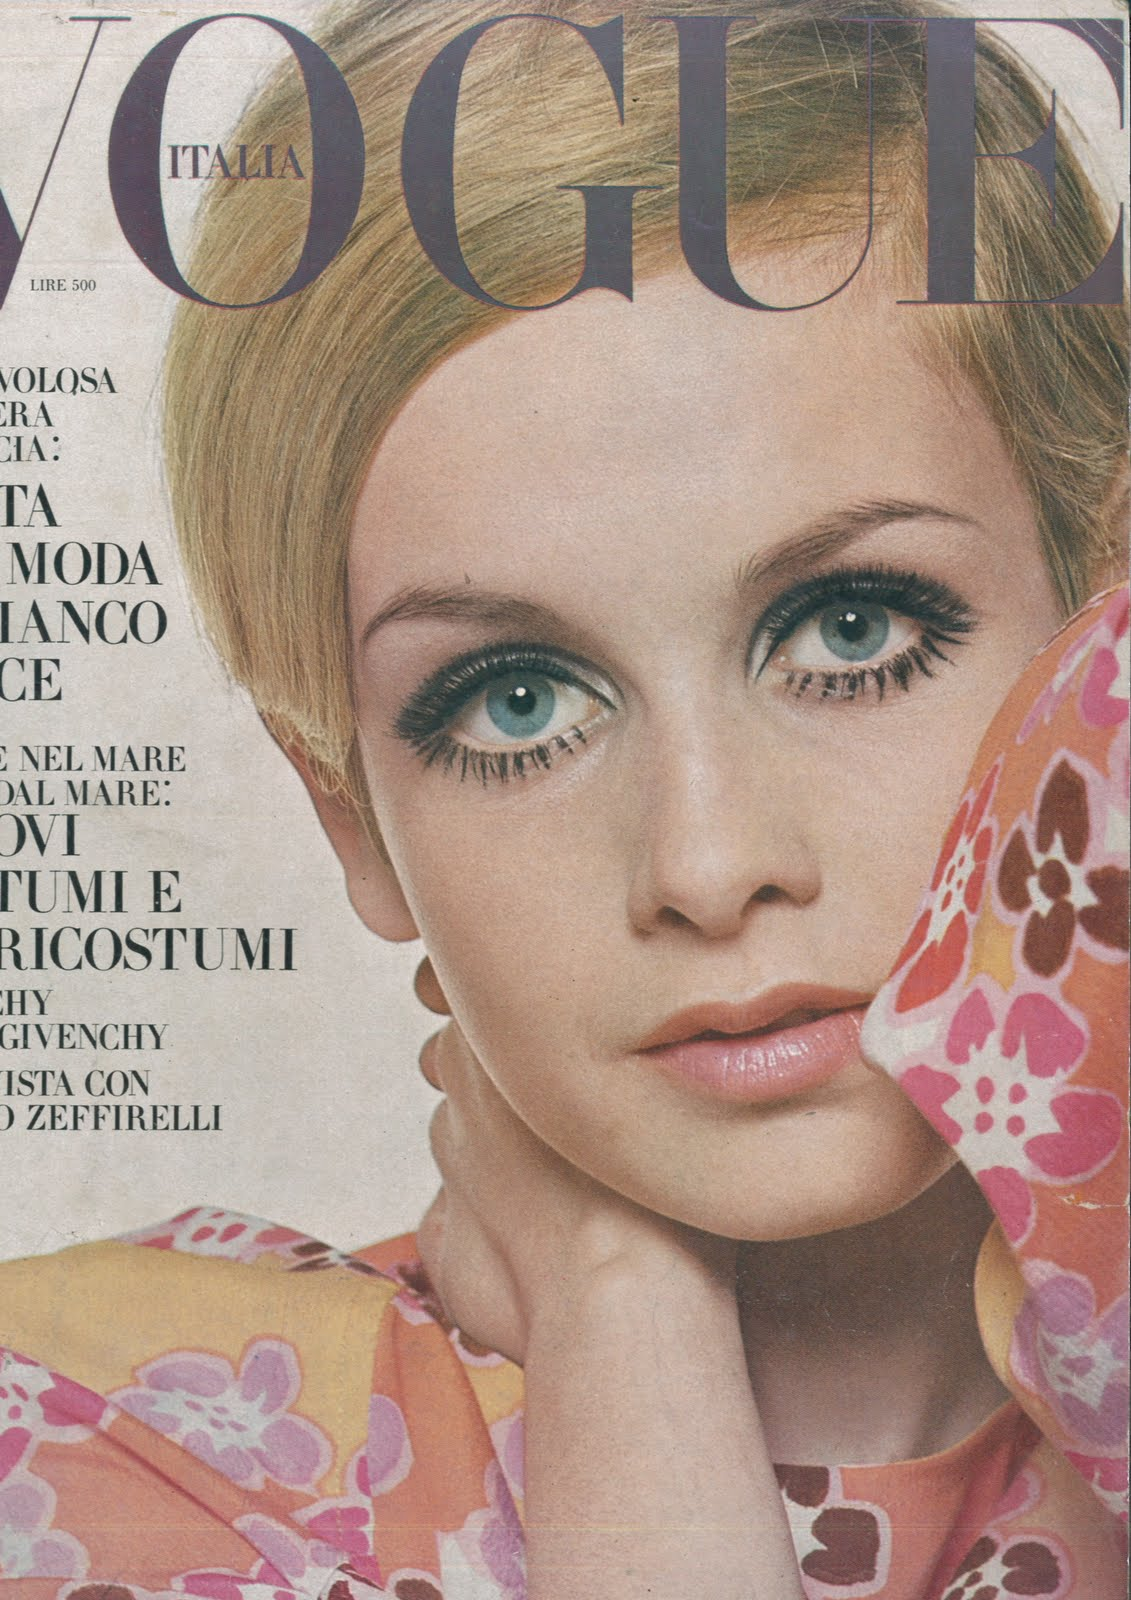 ... styles 1960s makeup tutorial 1970s eye makeup 1970s makeup 1950s